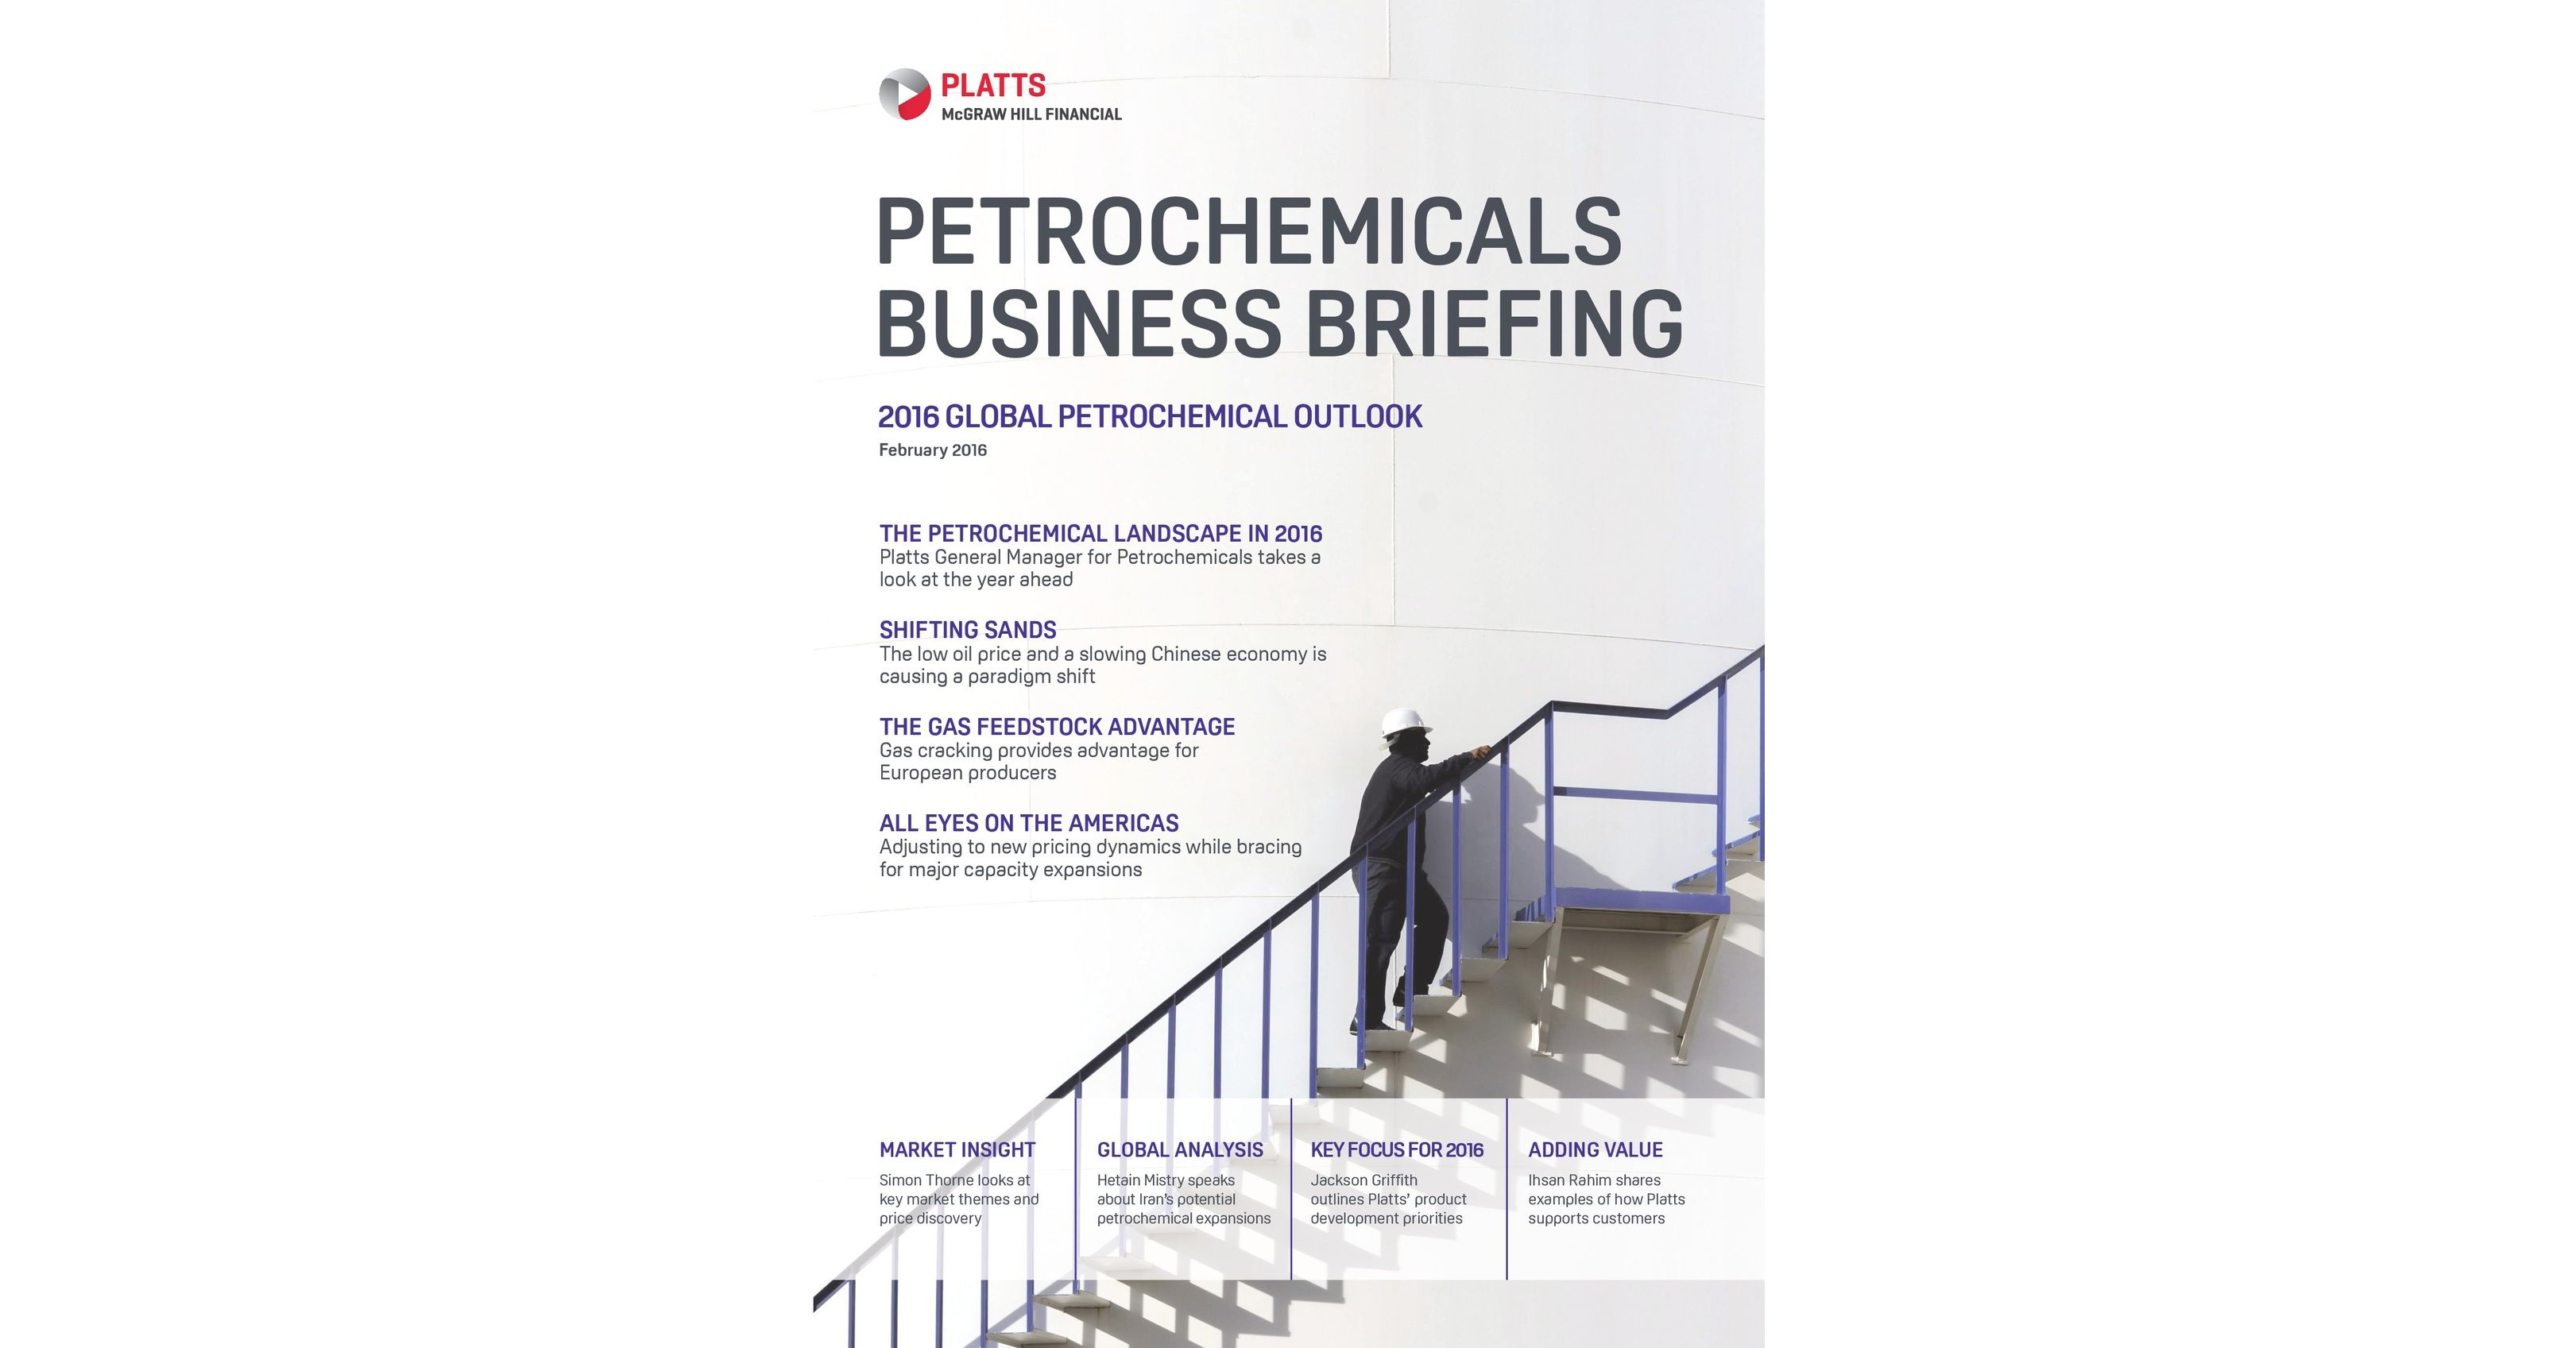 Petrochemicals Business Briefing | February 2016